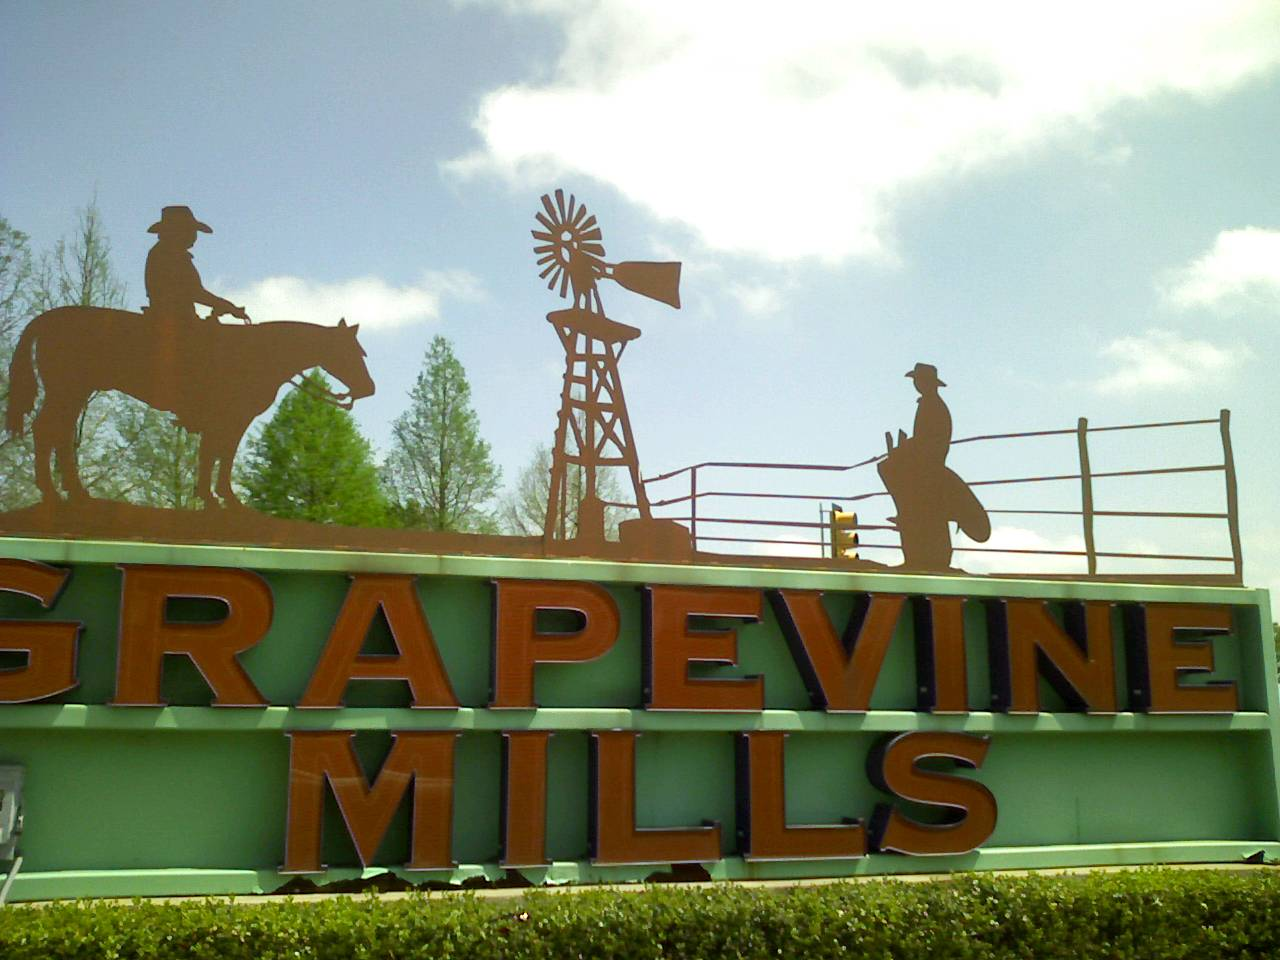 [grapevine+mills+sign]